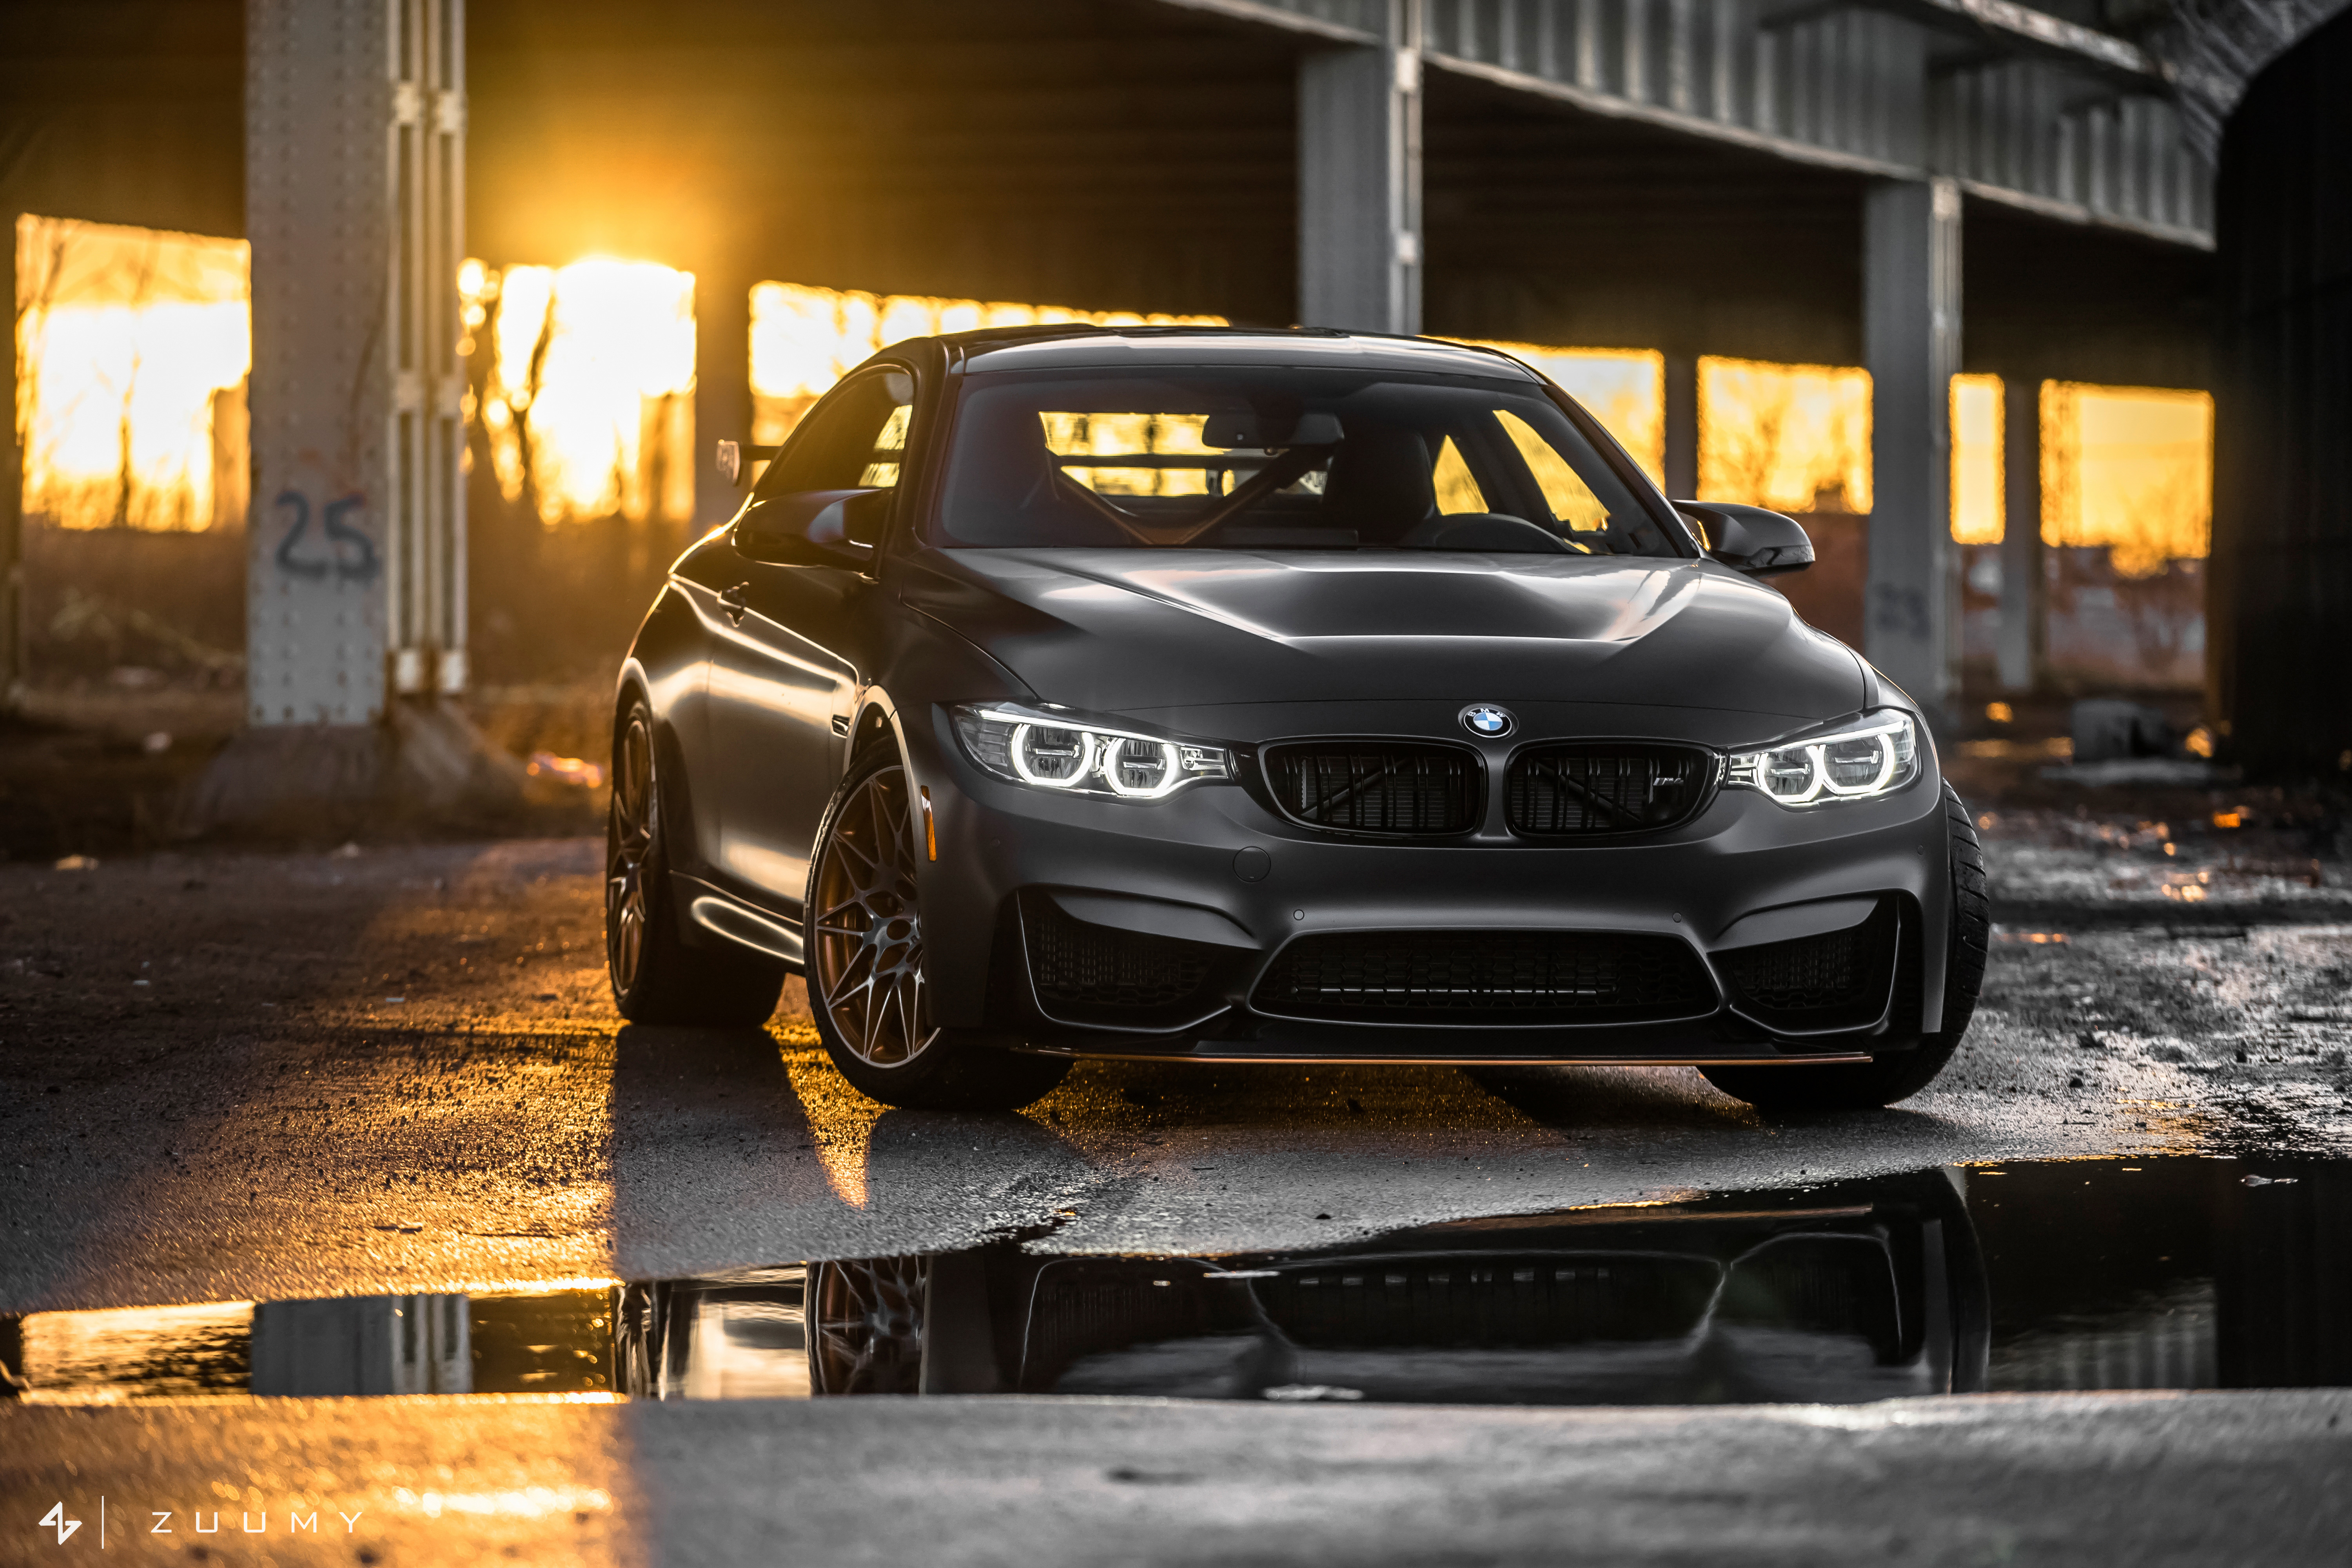 Bmw M4 Gts, HD Cars, 4k Wallpapers, Images, Backgrounds ...